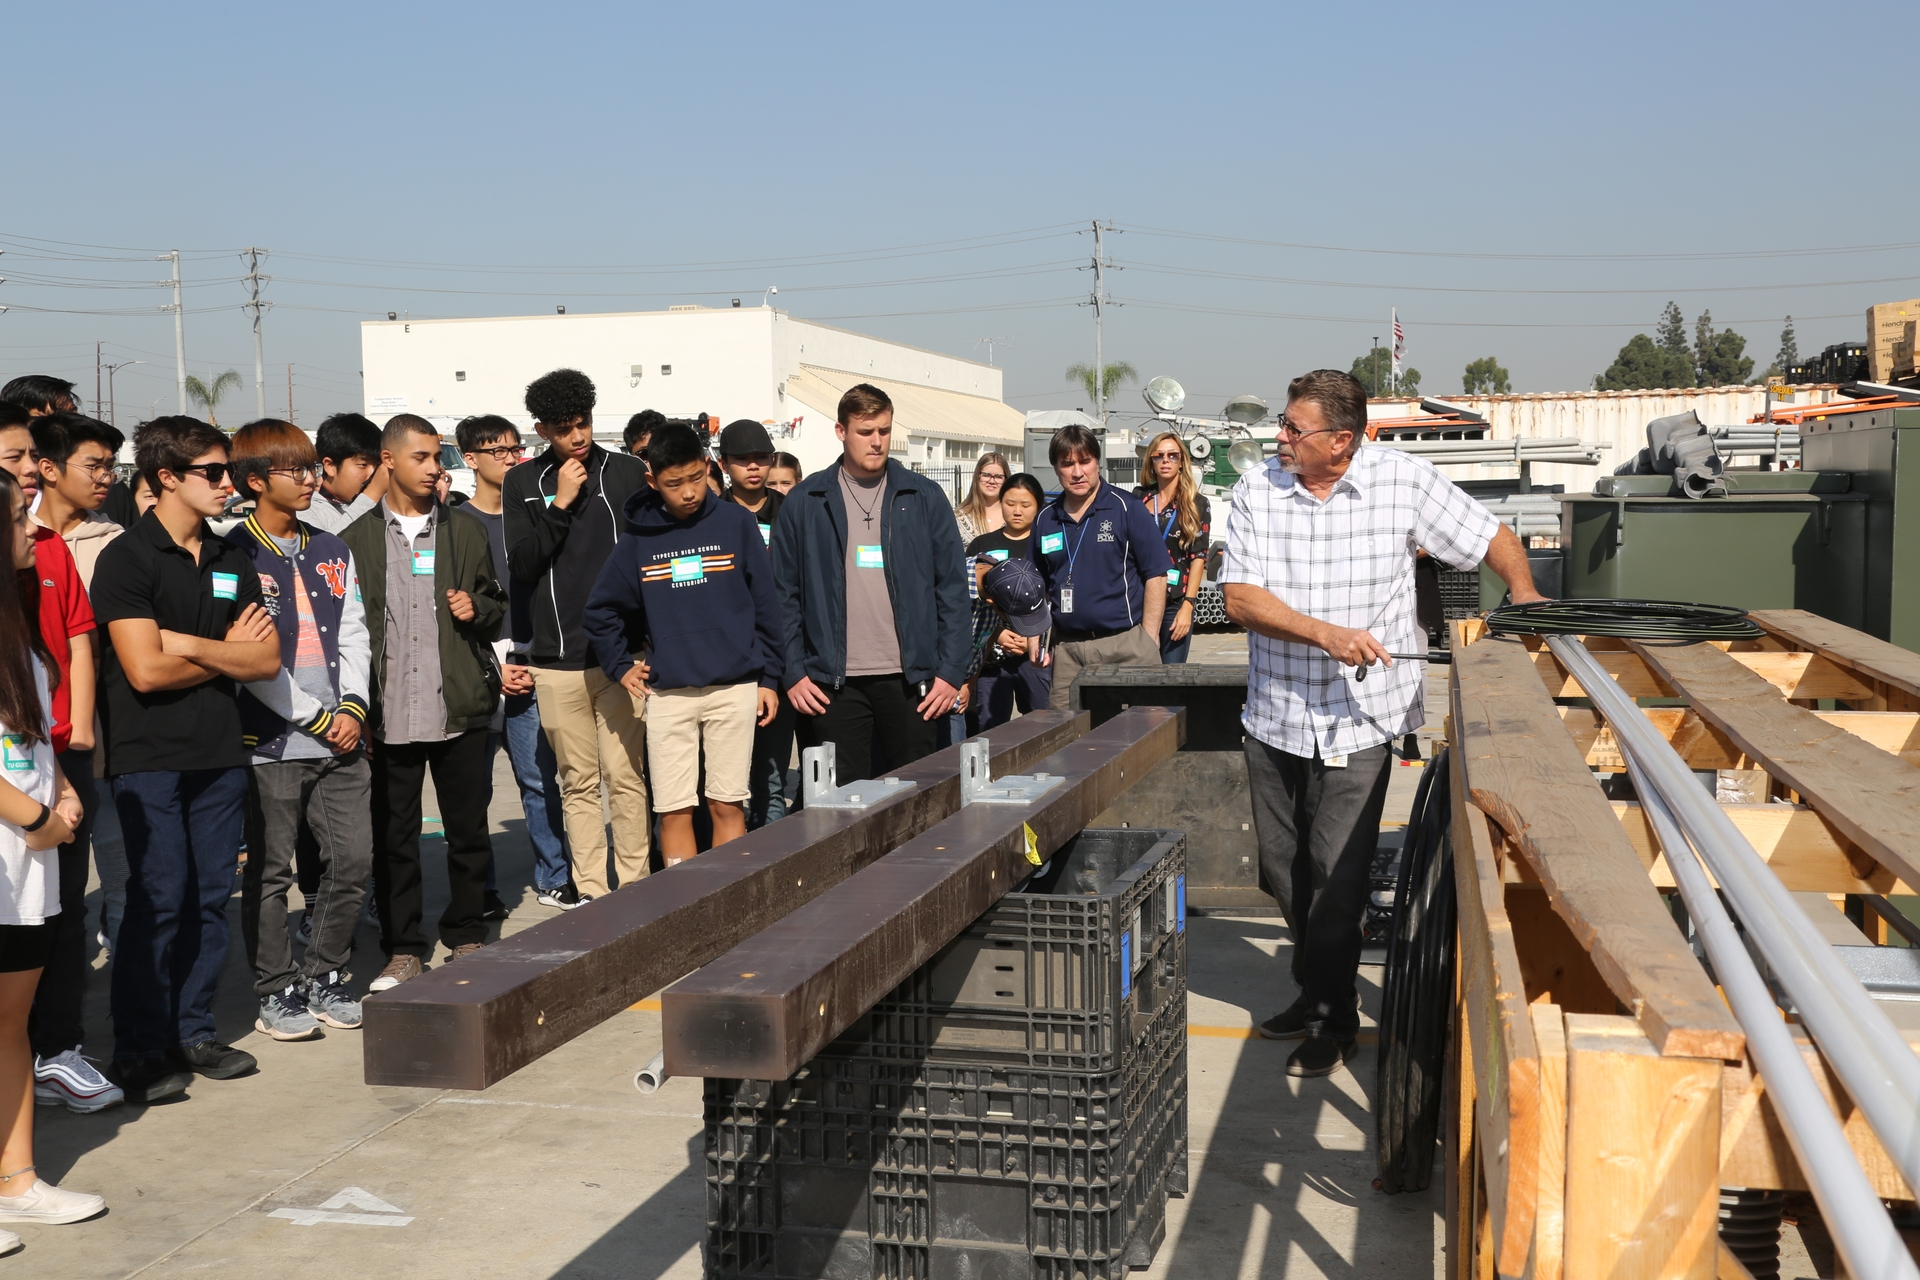 Students from Cypress High School tour the yard at SCE's Santa Ana Service Center.